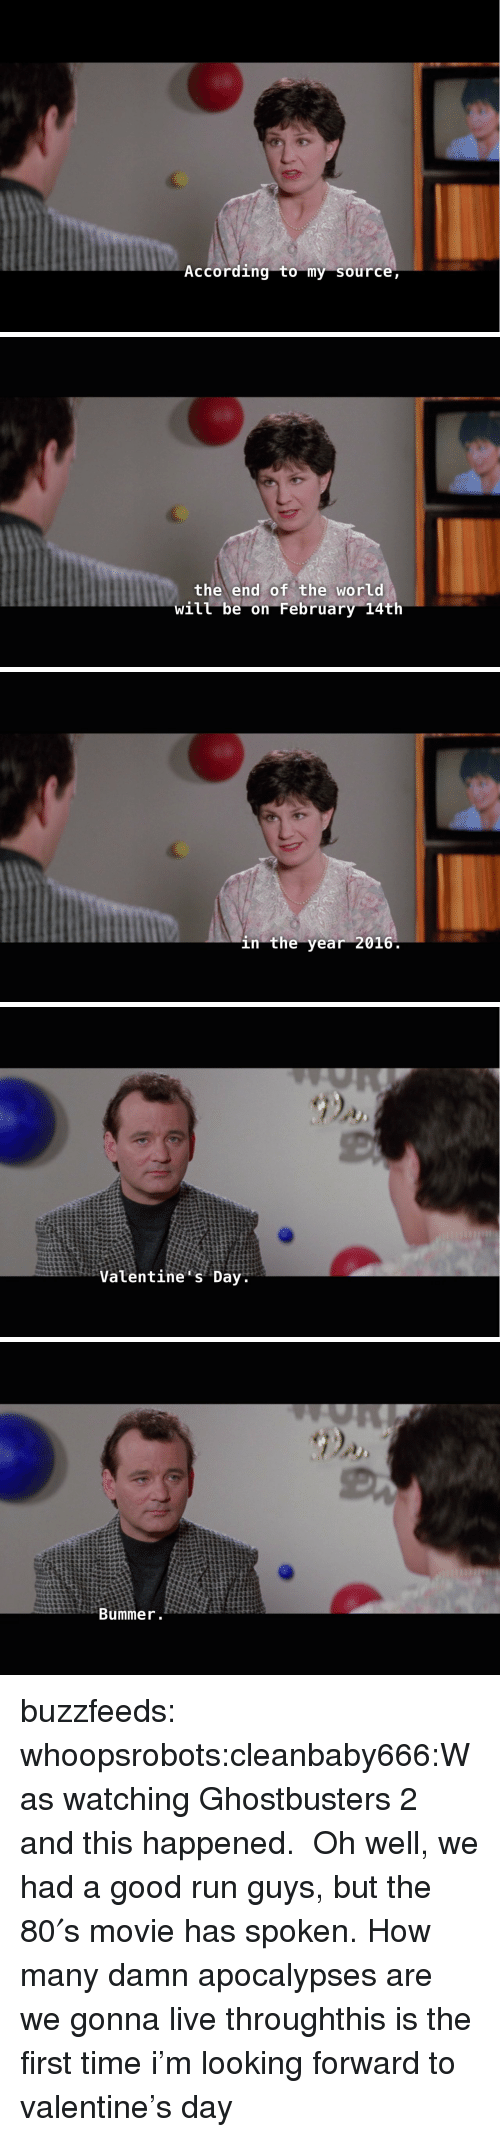 Run, Tumblr, and Blog: According to my source   the end of the world  will be on February 14th   in the year 2016   Valentine s Day   Bummer buzzfeeds:  whoopsrobots:cleanbaby666:Was watching Ghostbusters 2 and this happened. Oh well, we had a good run guys, but the 80′s movie has spoken.How many damn apocalypses are we gonna live throughthis is the first time i'm looking forward to valentine's day